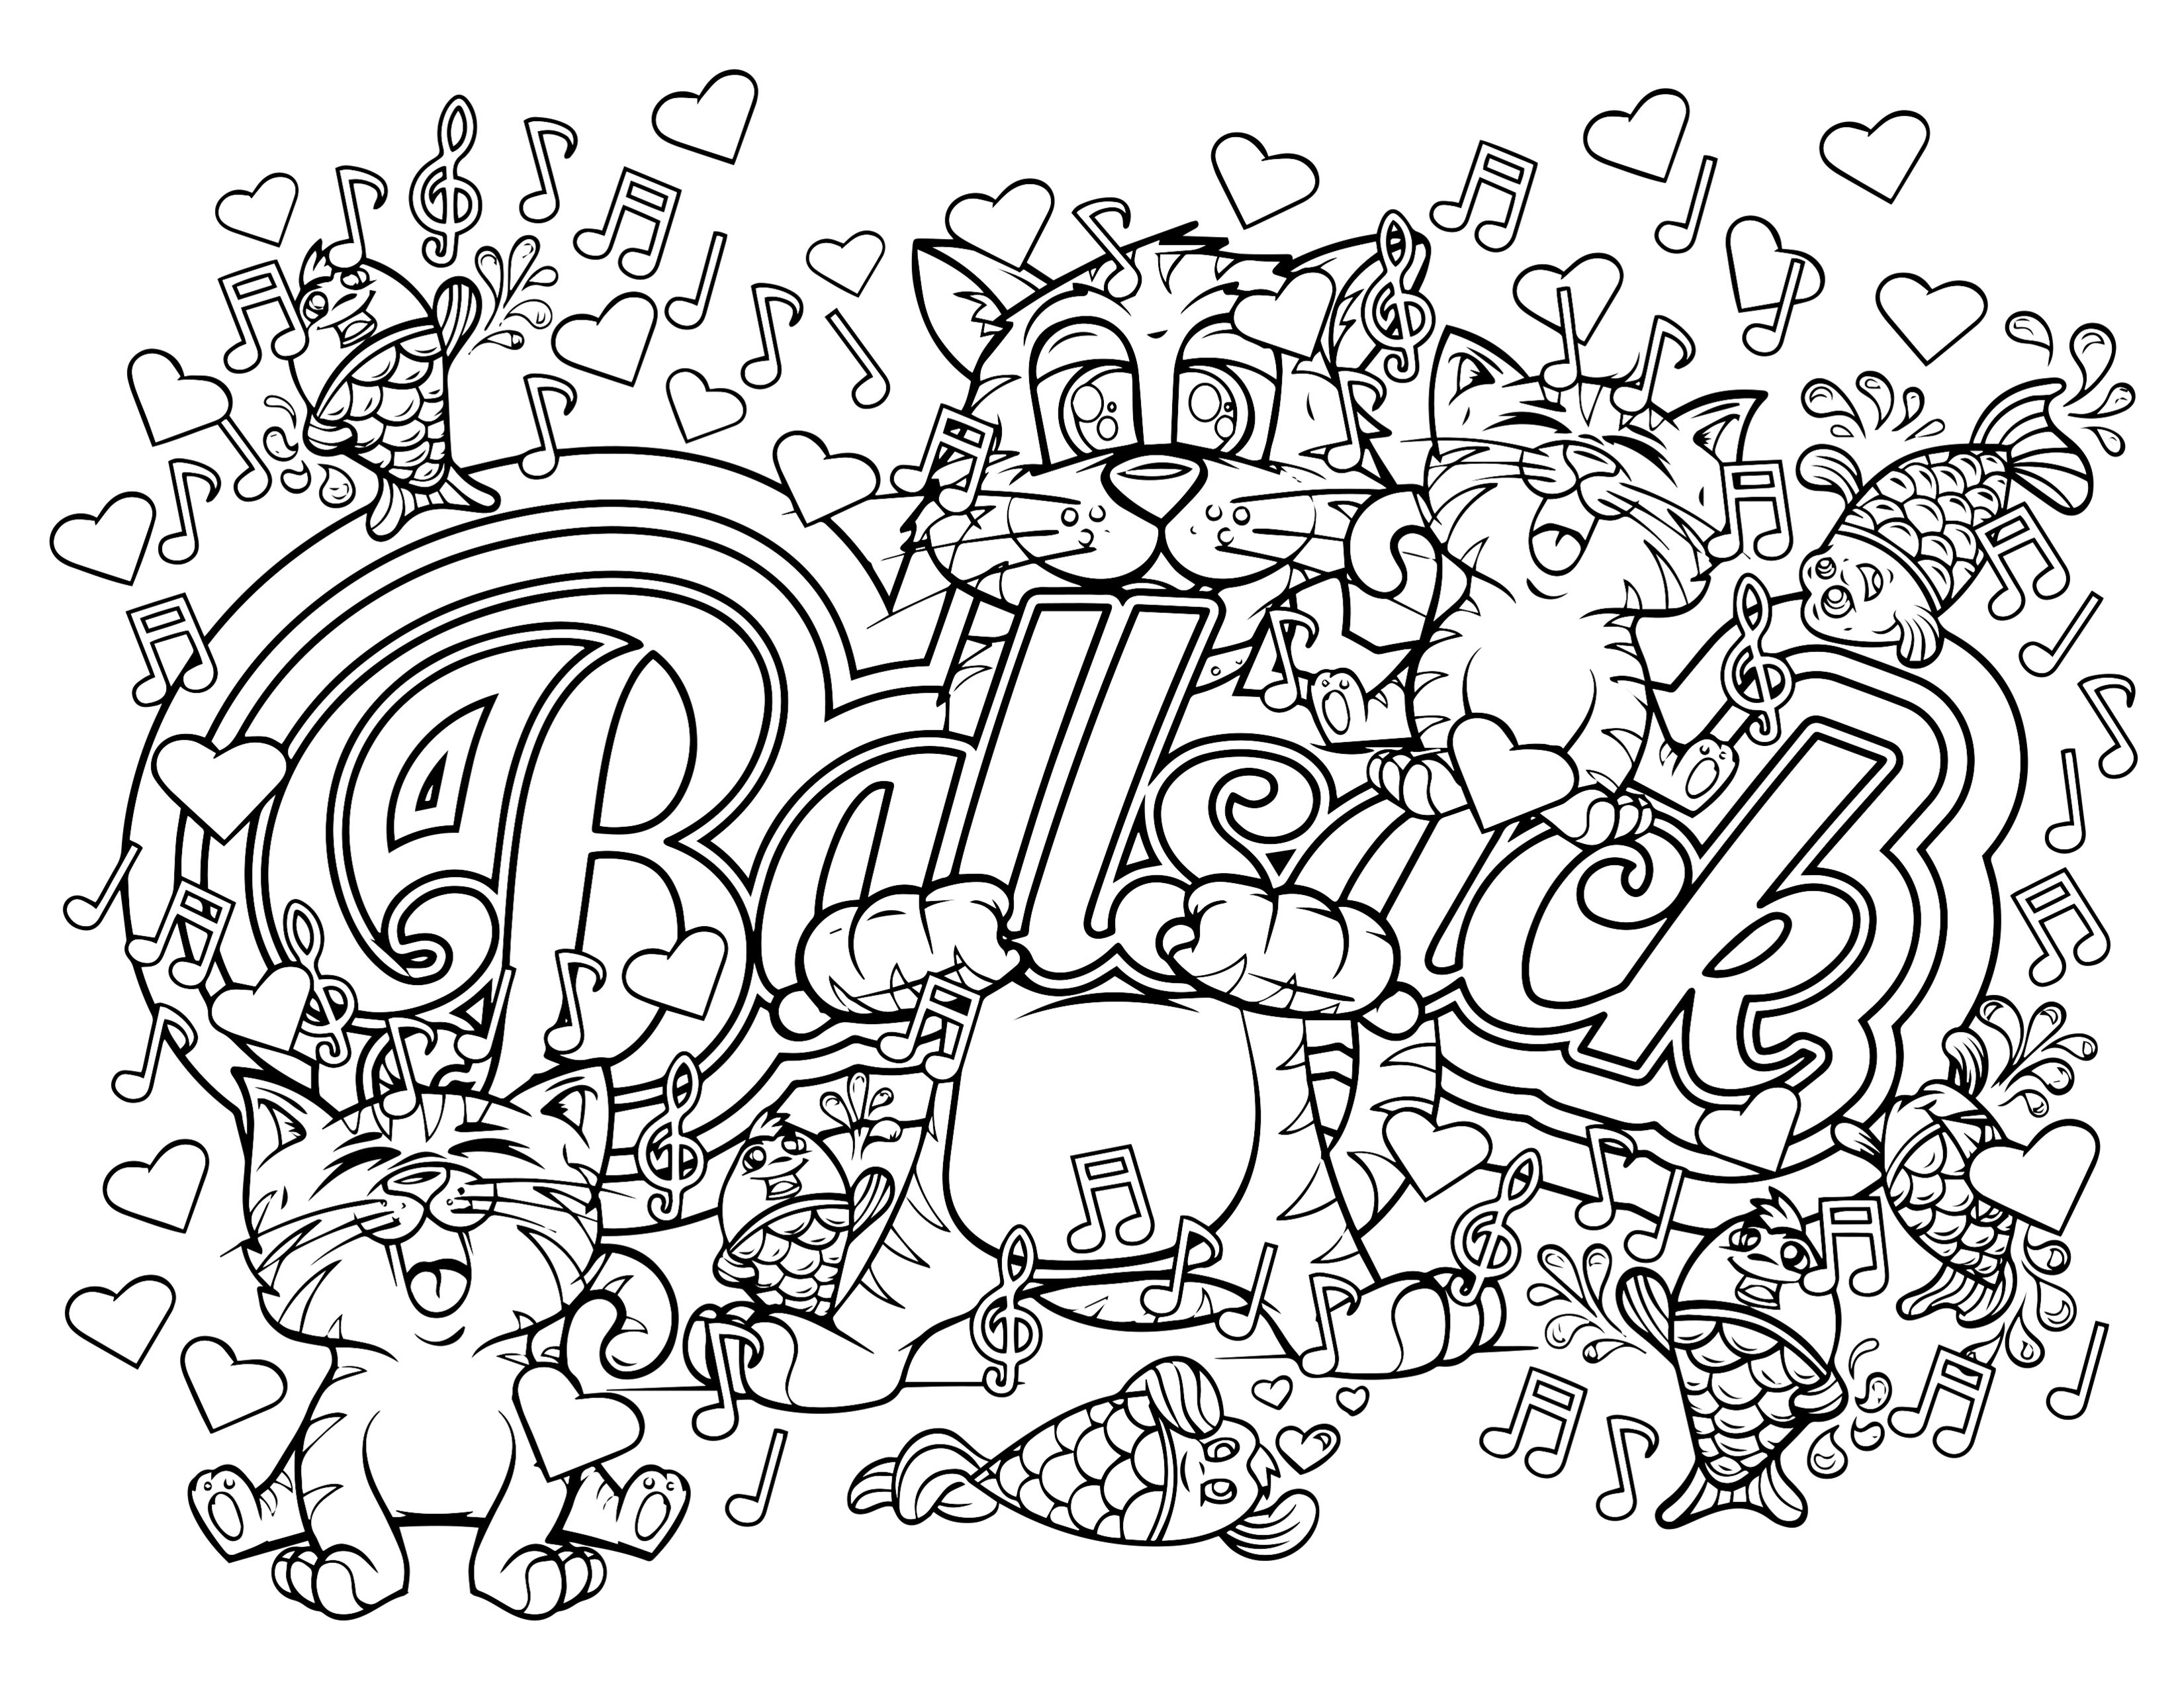 Bad word coloring pages - This Is A New Page From My Swear Word Coloring Book I Would Love Some